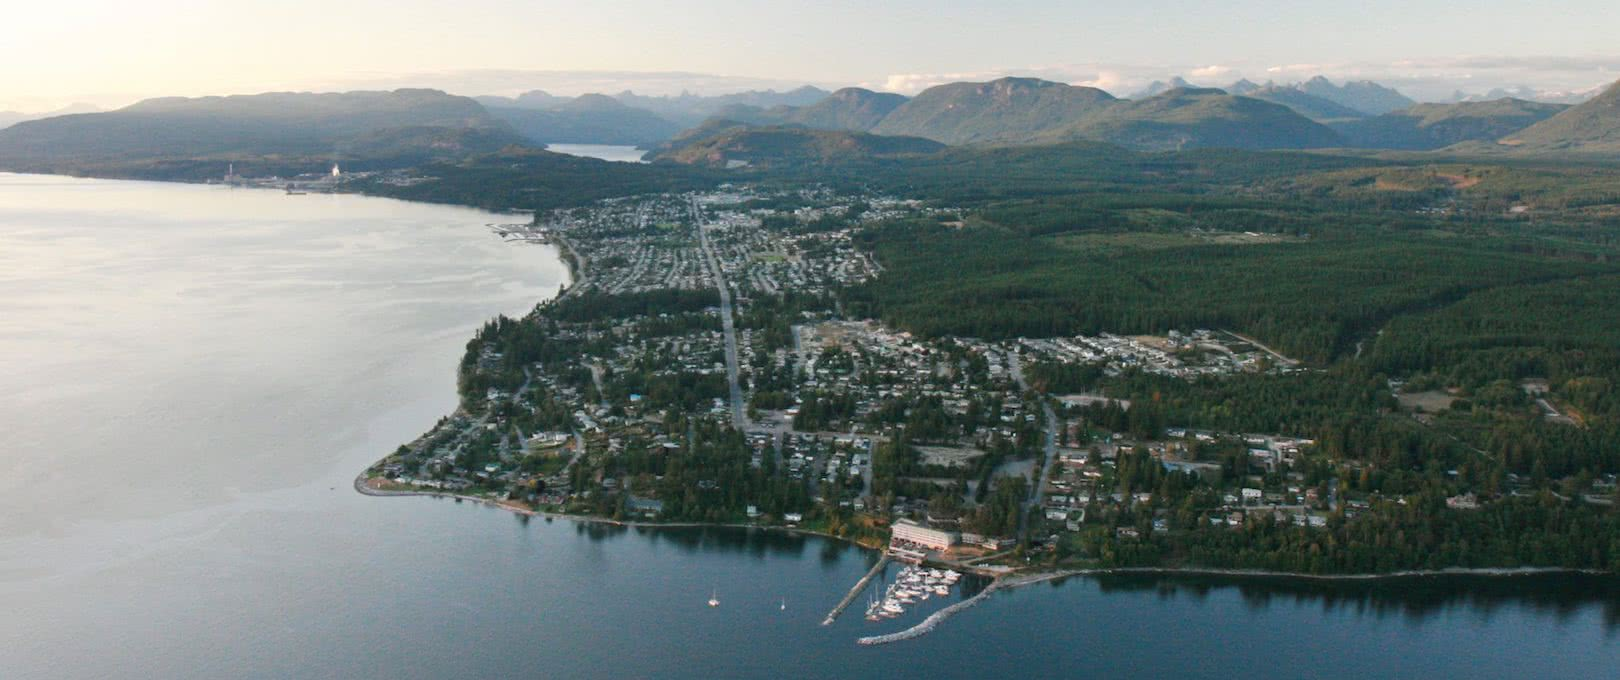 Powell River, British Columbia, from above